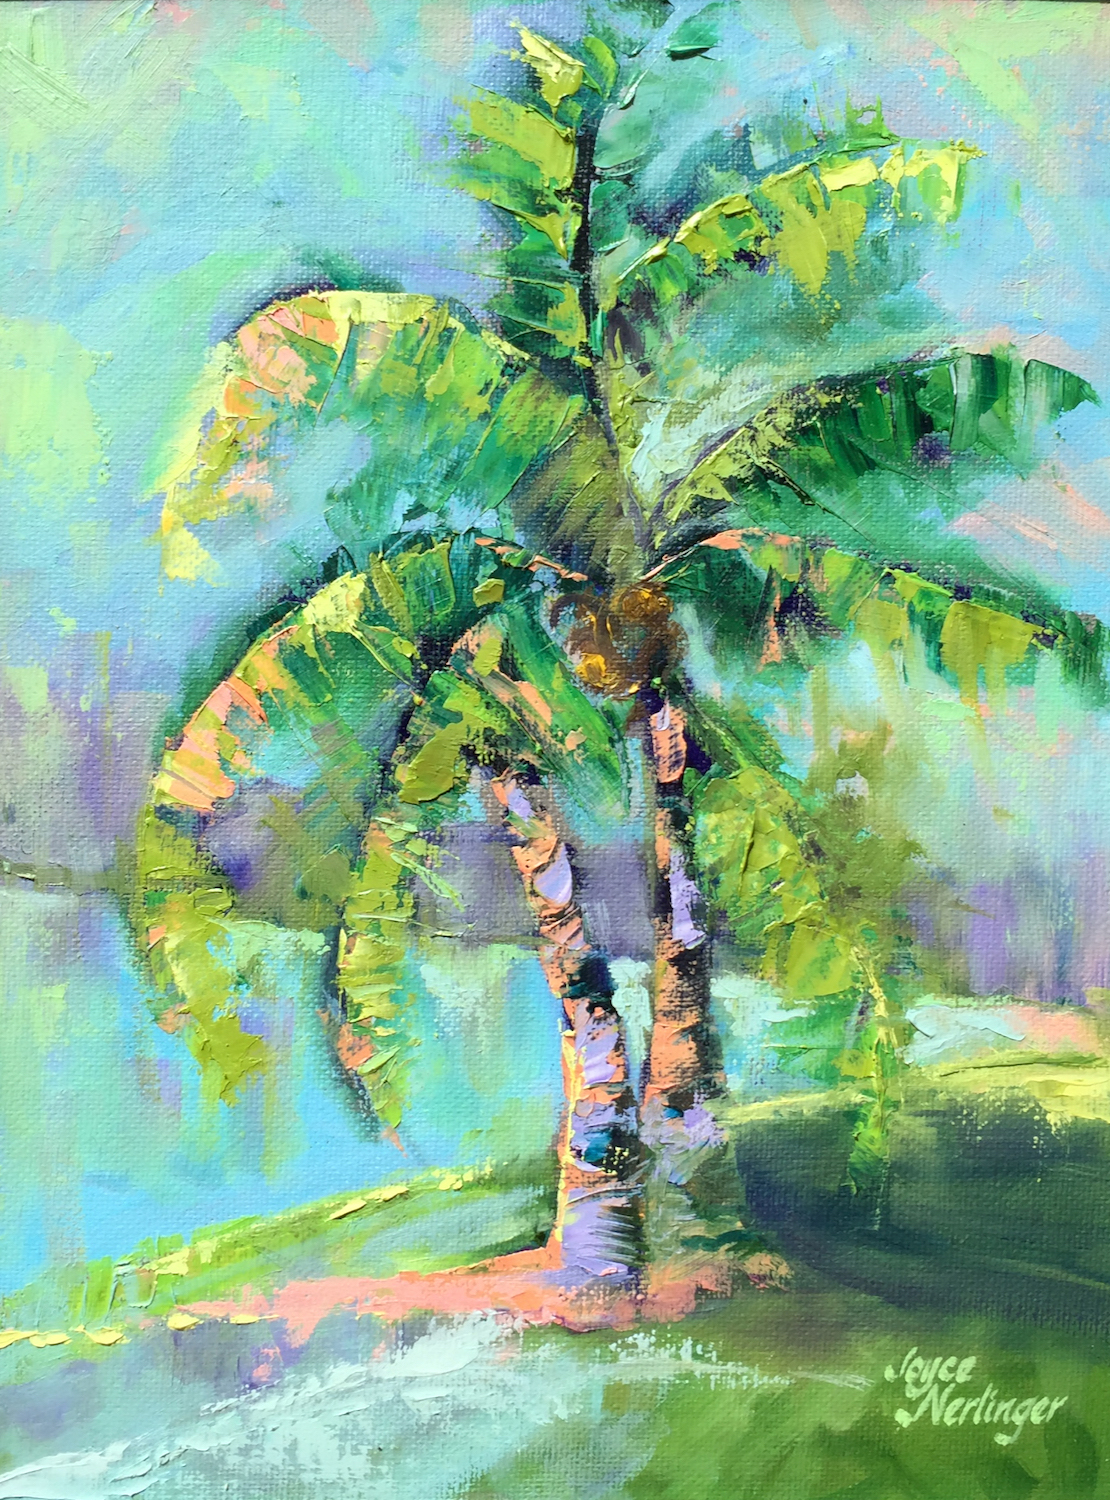 Florida Fronds - Joyce Nerlinger